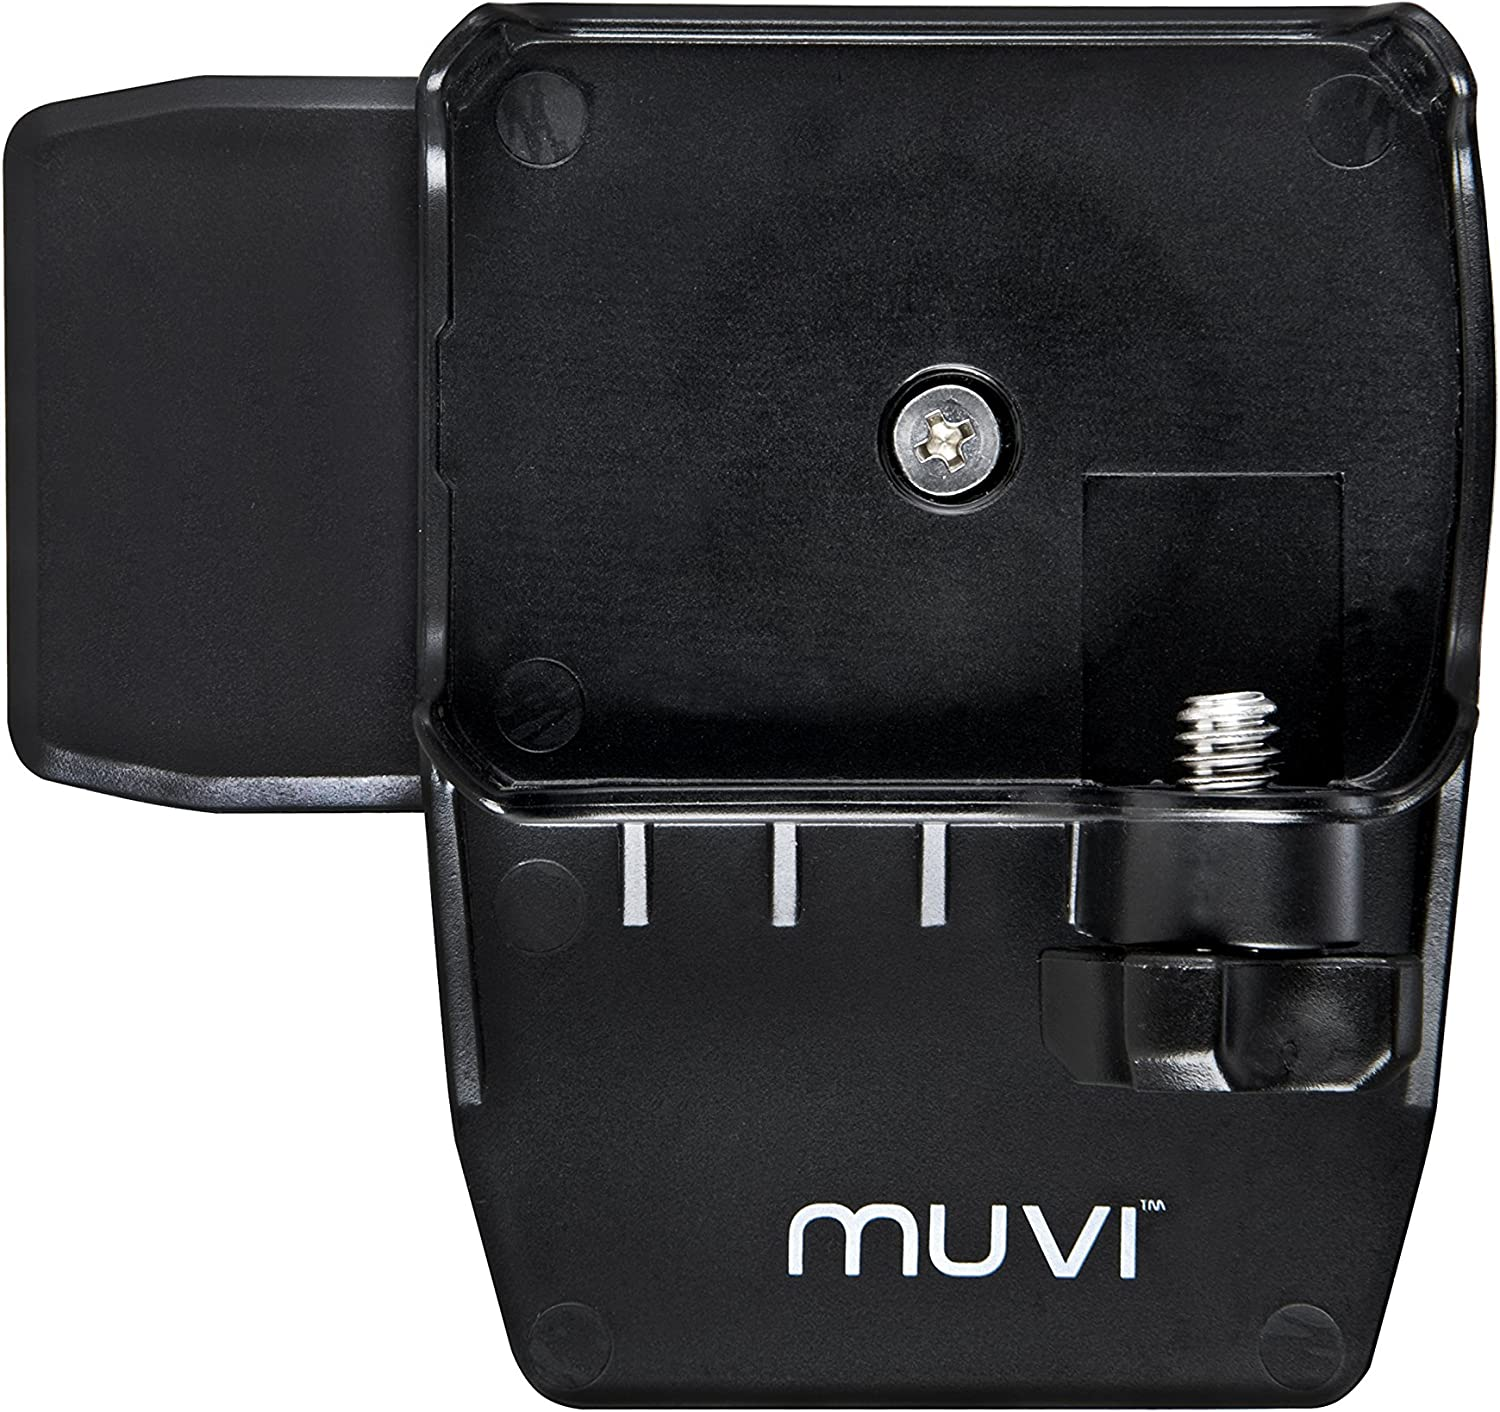 Muvi Micro Veho Muvi Palm Strap Mount for Snowboarding//Skydiving//Surfing//Scuba//Action Sports for Muvi KX-Series Muvi HD VCC-A023-PSM Black Muvi K-Series